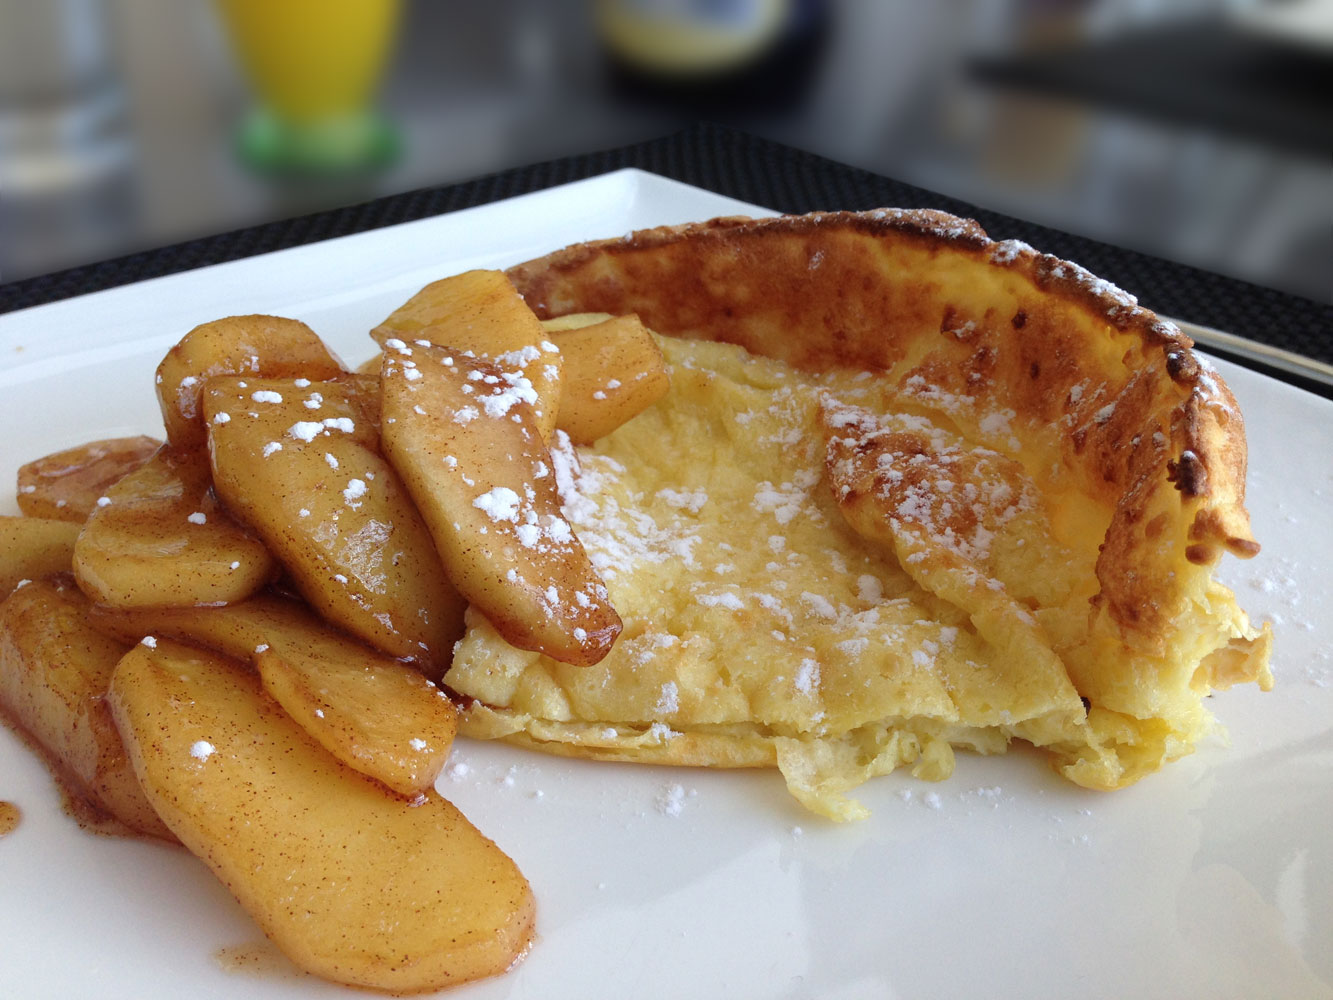 German Pancake with Cinnamon Apples